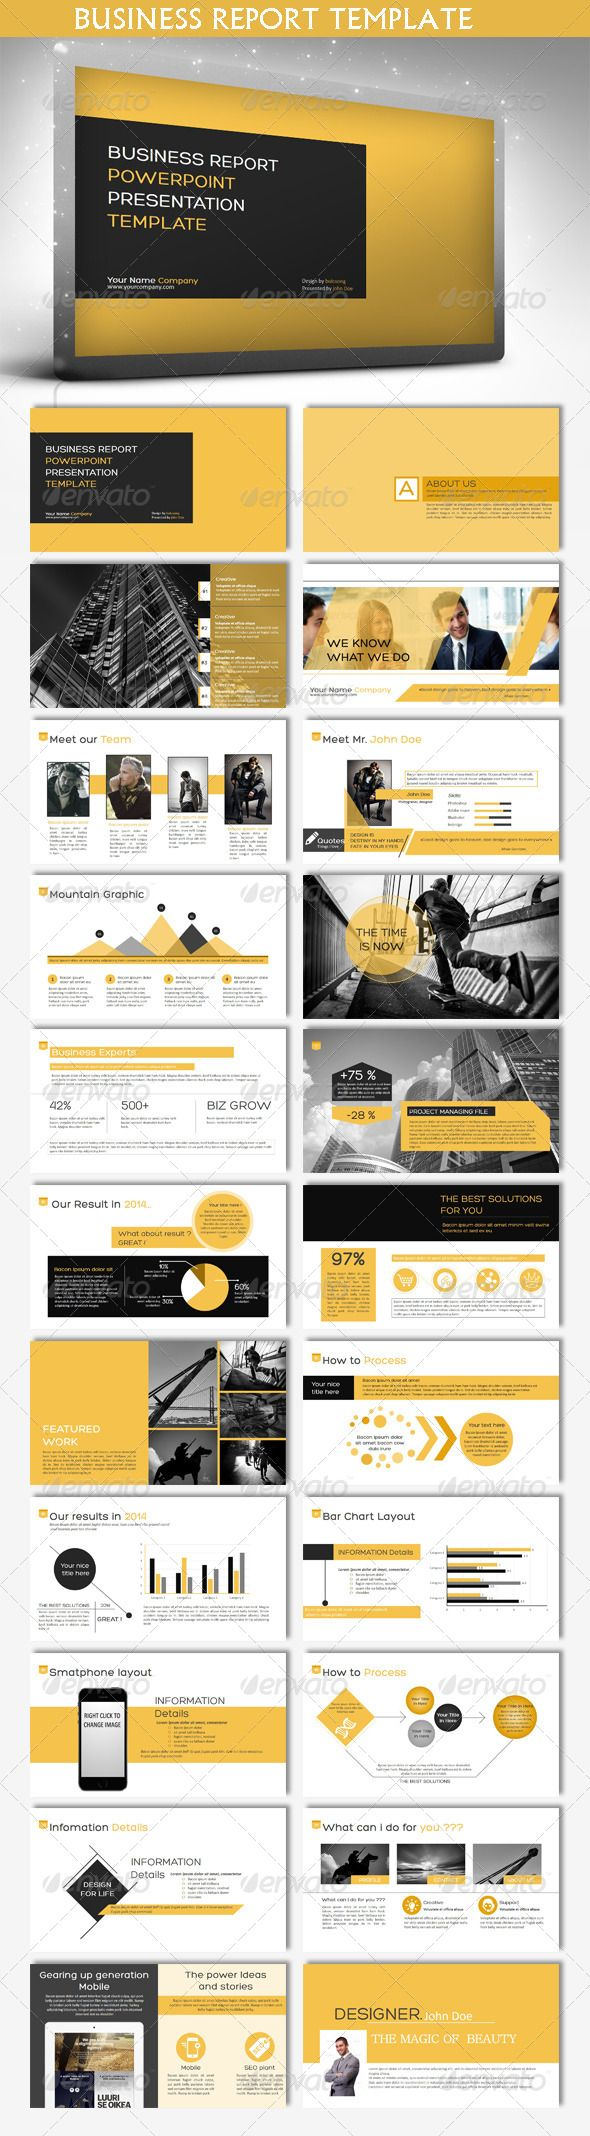 Business Report Powerpoint Template (Powerpoint Templates) #Powerpoint #Powerpoi